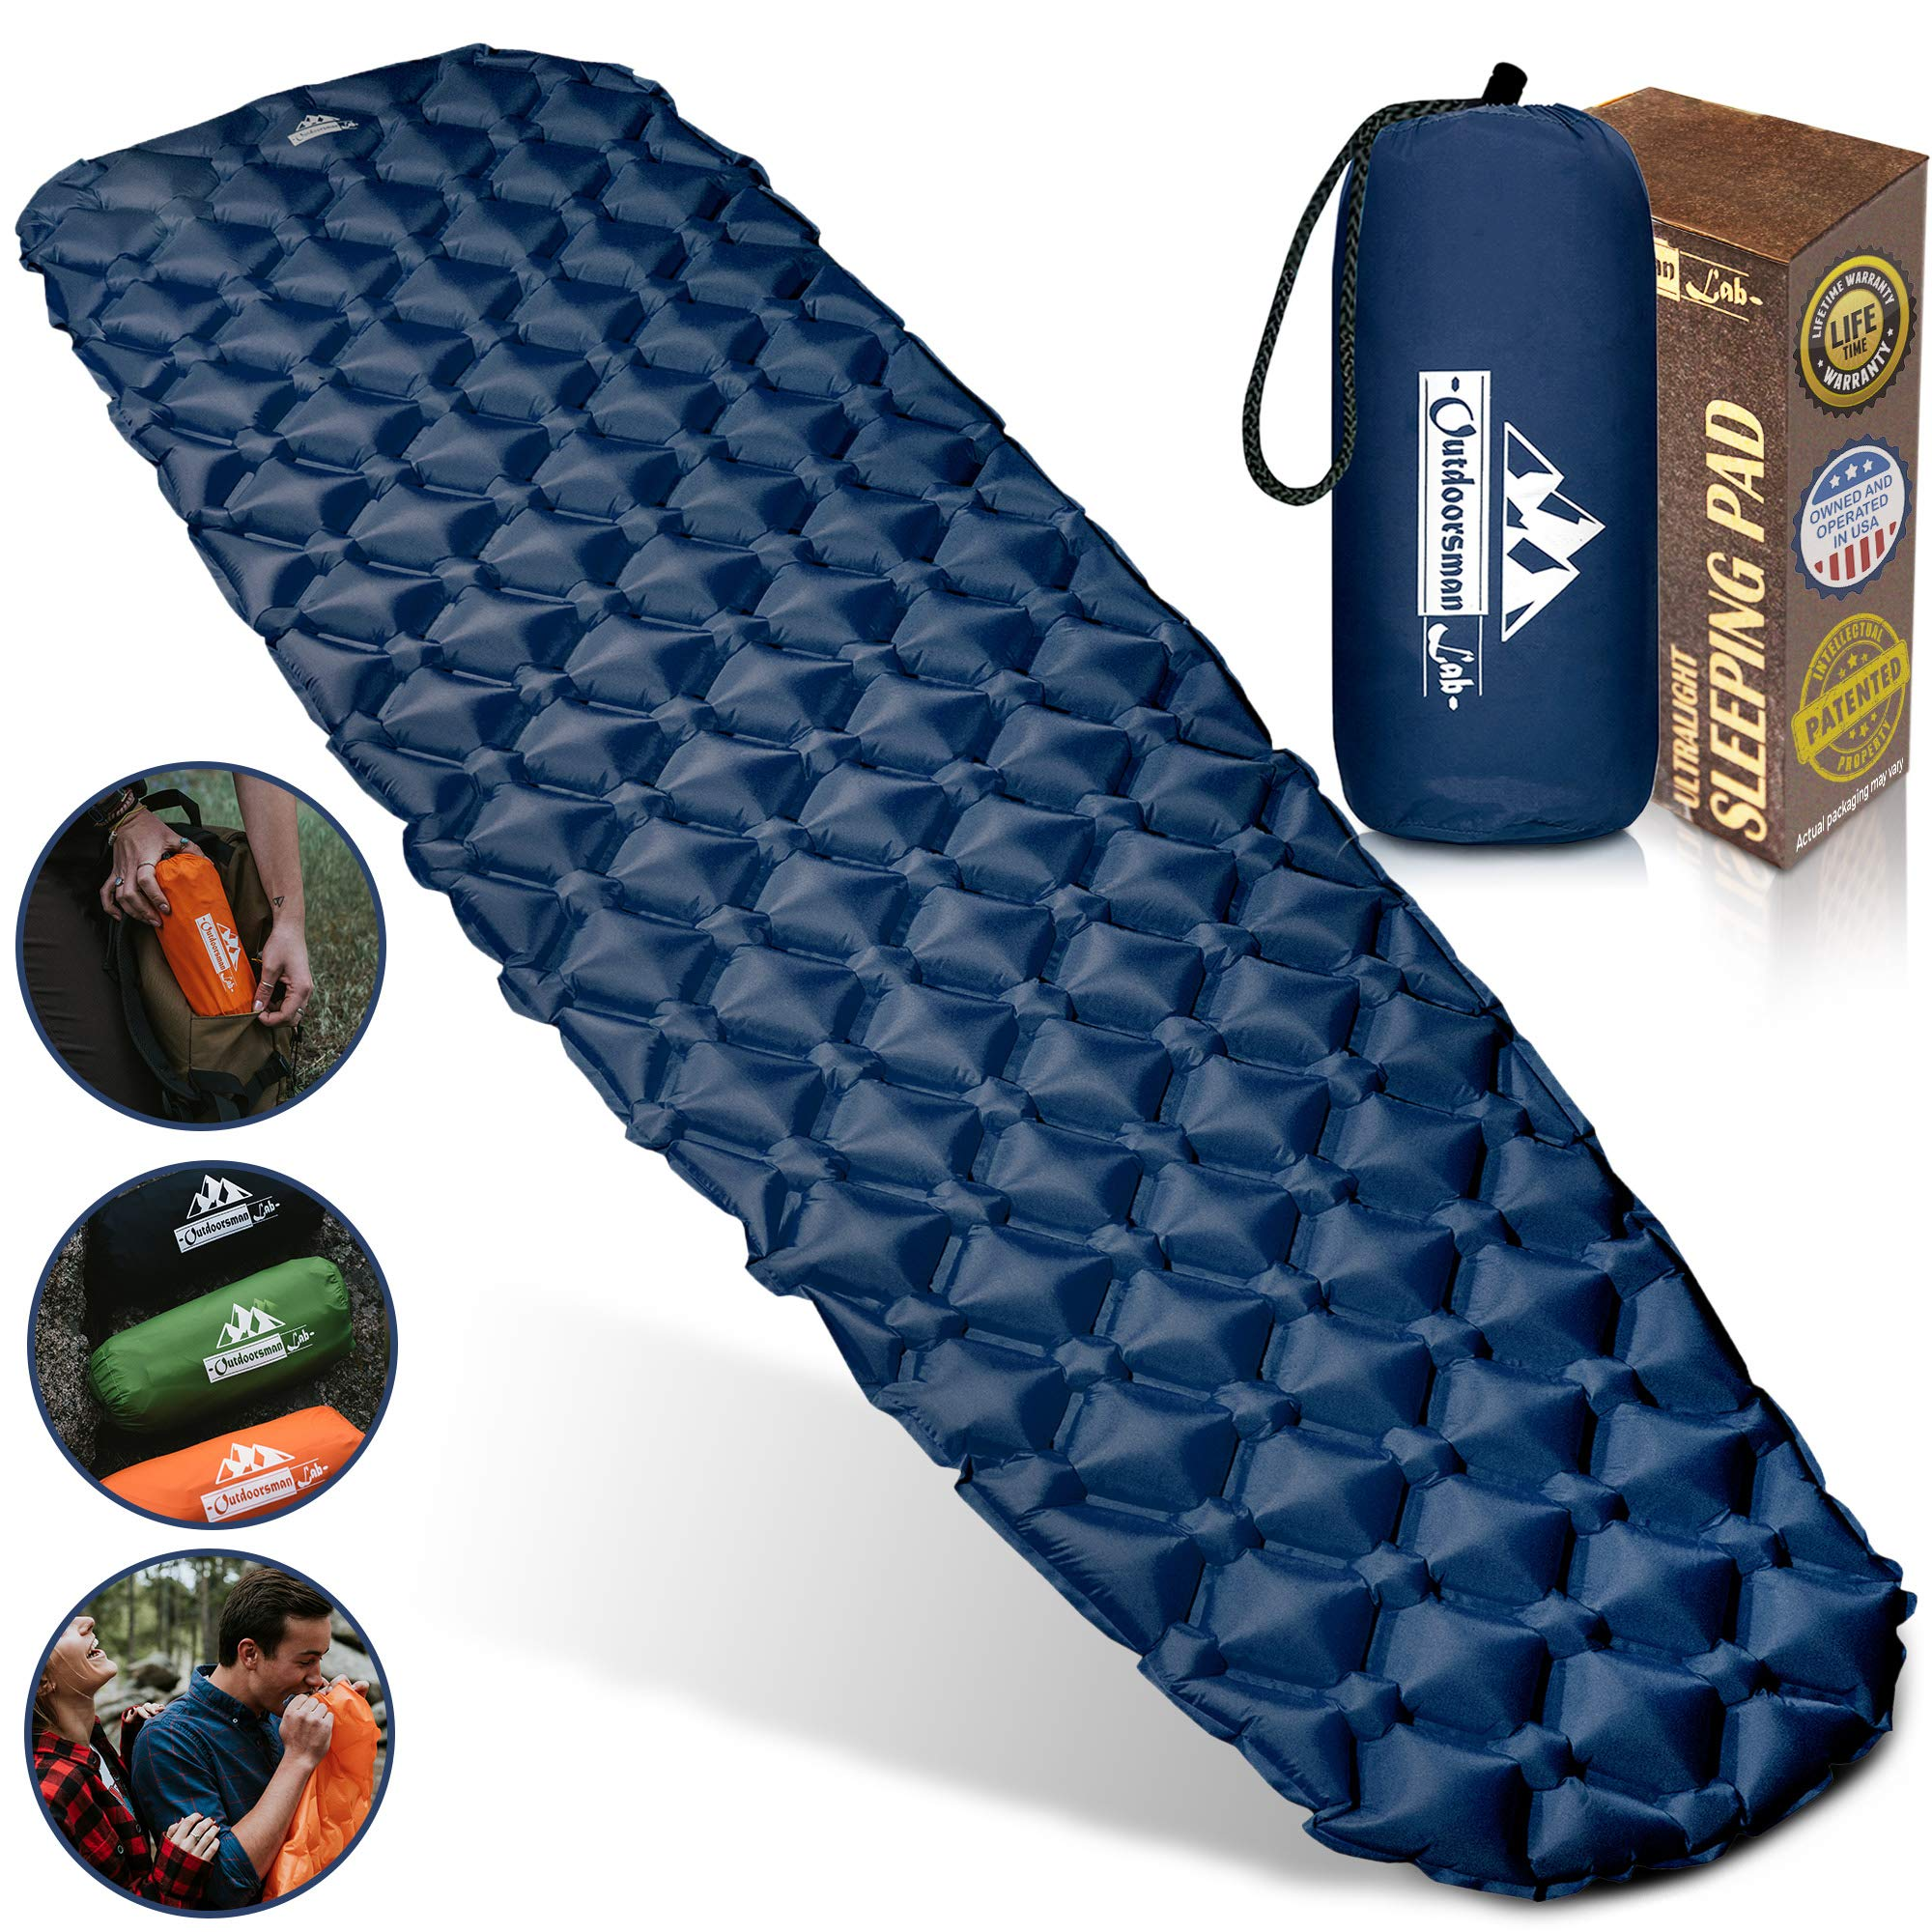 OutdoorsmanLab Ultralight Sleeping Pad - Ultra-Compact for Backpacking, Camping, Travel w Air-Support Cells Design (Blue) by Outdoorsman Lab